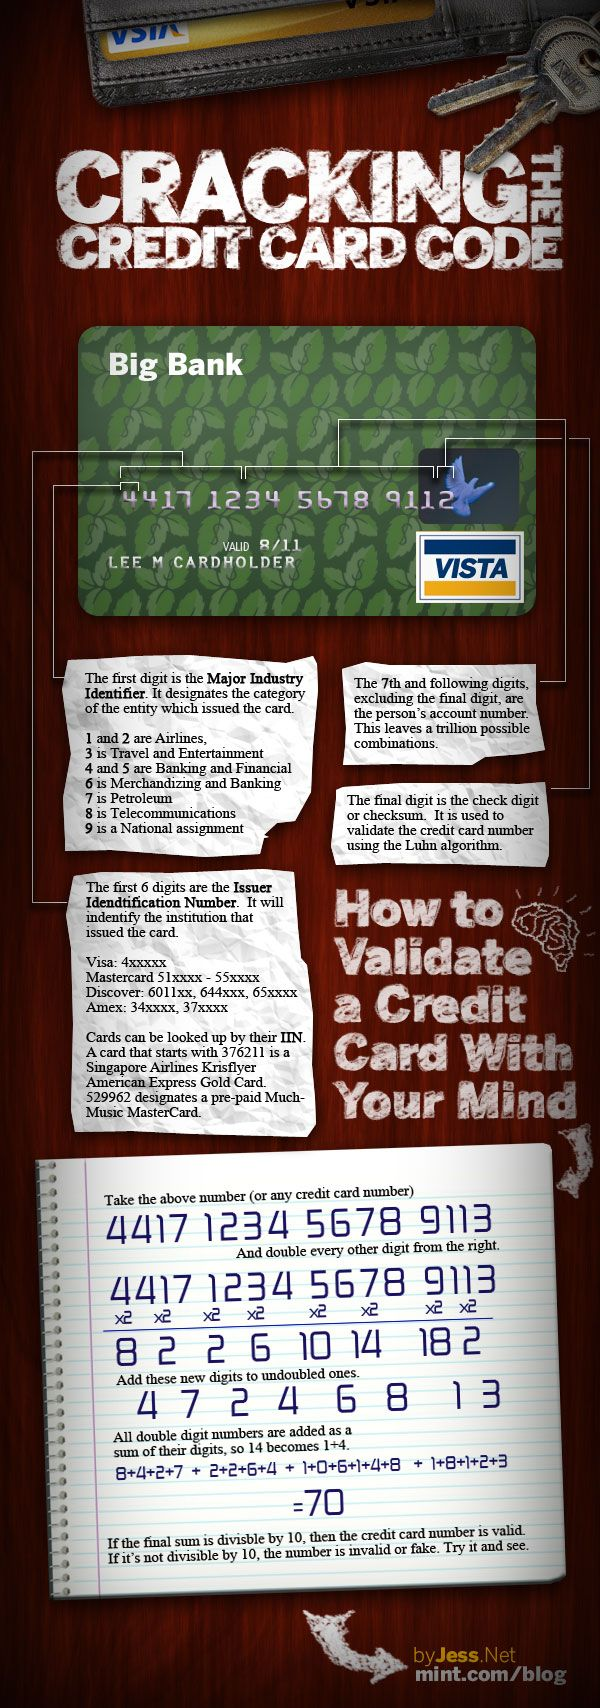 How to crack and validate a credit card with your mind.